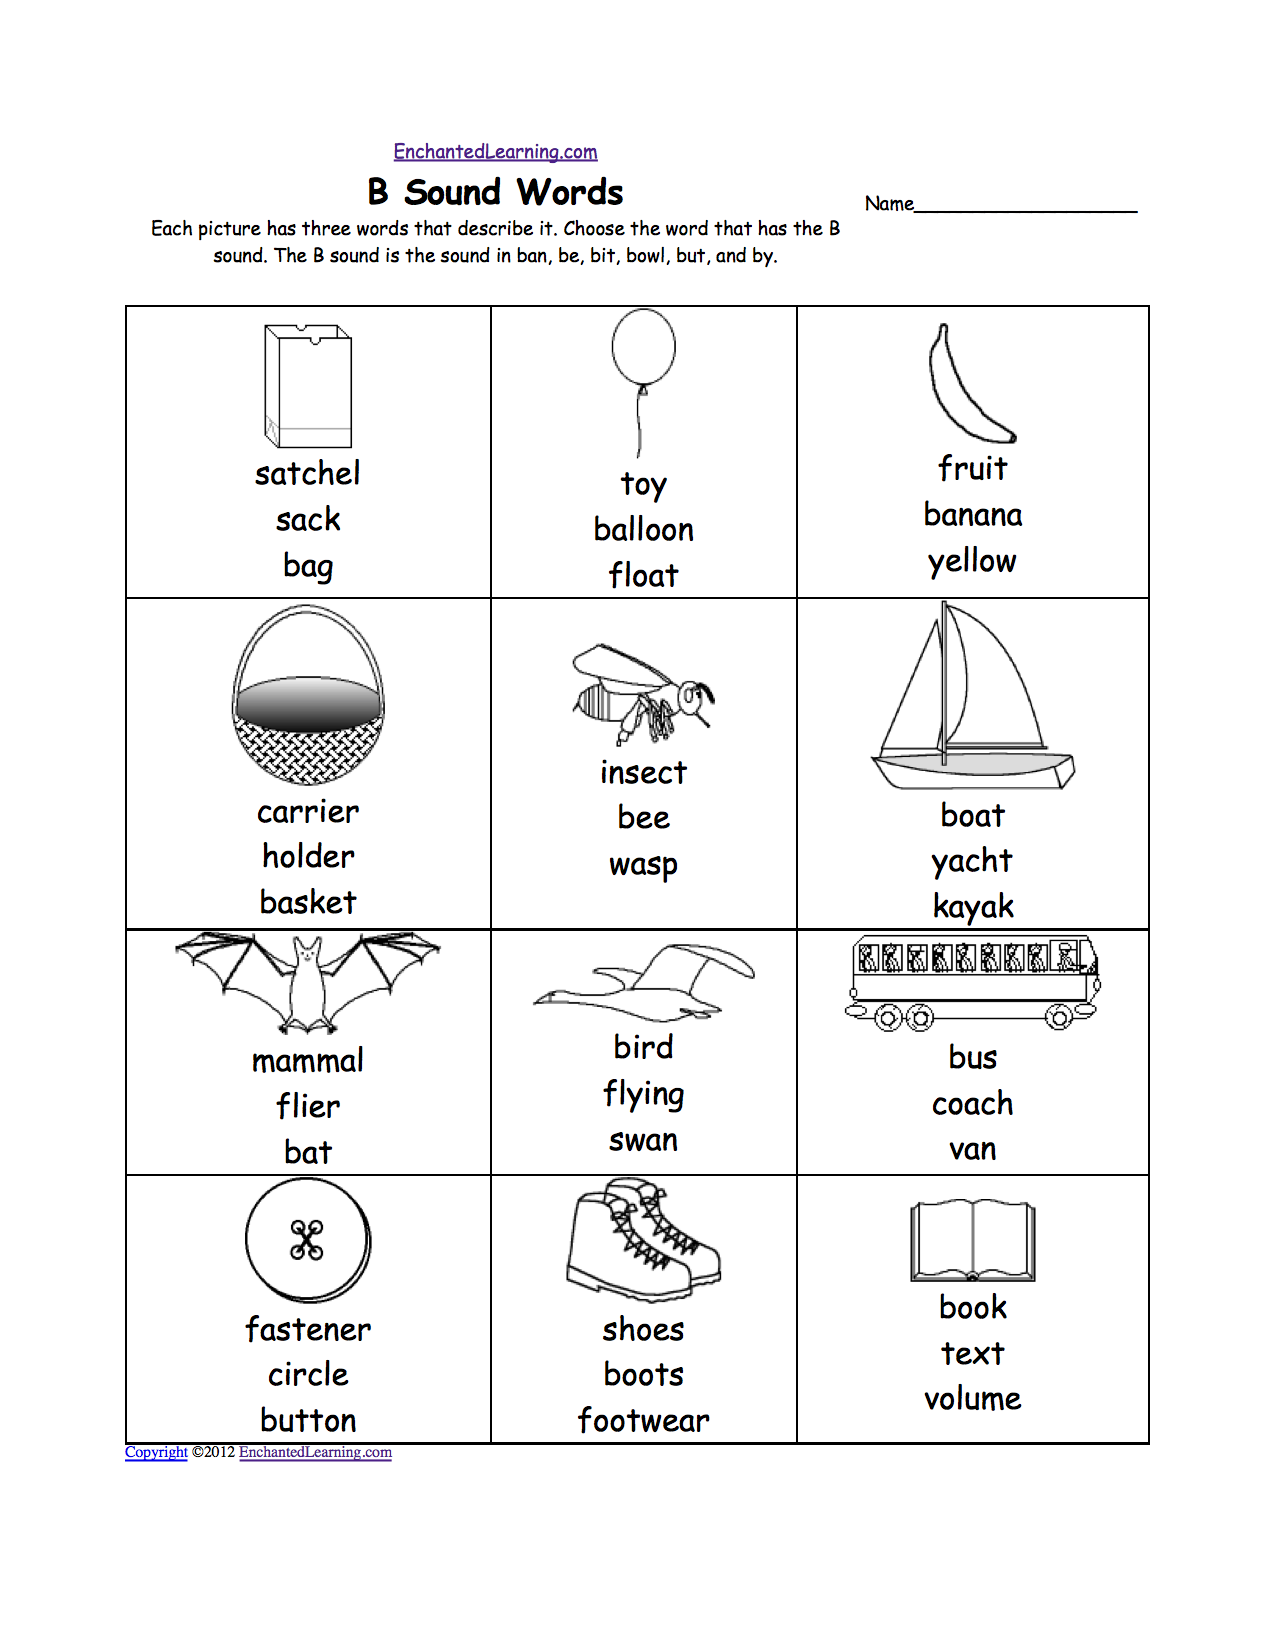 Aldiablosus  Remarkable Phonics Worksheets Multiple Choice Worksheets To Print  With Goodlooking Quotbquot Sound Phonics Worksheet Multiple Choice Each Picture Has Three Words That Describe It Choose The Word That Has A Quotbquot Sound The Quotbquot Sound Is The Sound  With Nice Healthy Living For Kids Worksheets Also Integer Exponent Worksheet In Addition Direct Indirect Worksheets And Counting In S Worksheet As Well As Ten Times Tables Worksheets Additionally Adverb Worksheets For Grade  From Enchantedlearningcom With Aldiablosus  Goodlooking Phonics Worksheets Multiple Choice Worksheets To Print  With Nice Quotbquot Sound Phonics Worksheet Multiple Choice Each Picture Has Three Words That Describe It Choose The Word That Has A Quotbquot Sound The Quotbquot Sound Is The Sound  And Remarkable Healthy Living For Kids Worksheets Also Integer Exponent Worksheet In Addition Direct Indirect Worksheets From Enchantedlearningcom